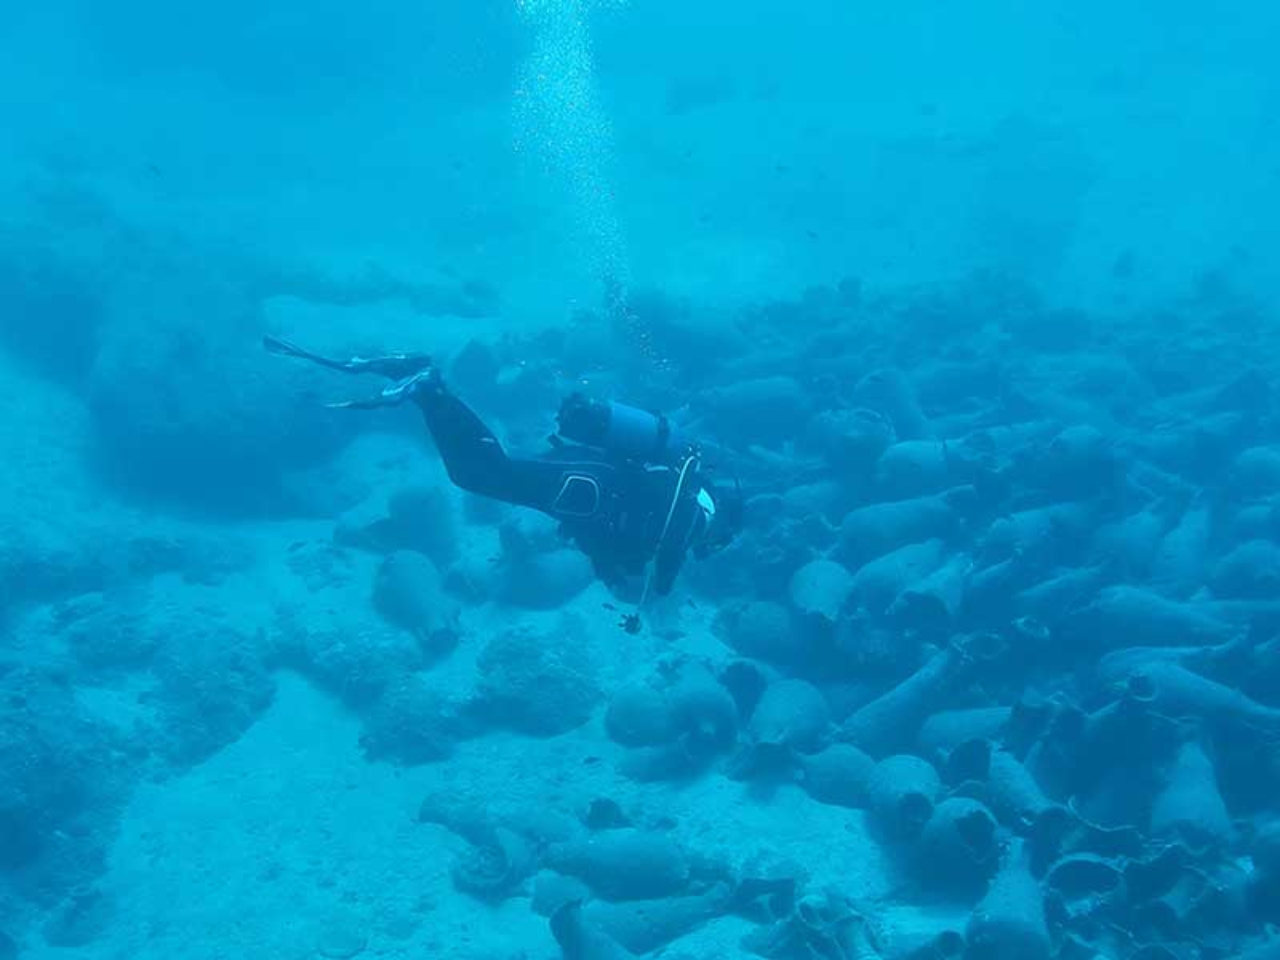 _Archaeological_research_project_in_the_Bay_of_Palekastro_-_East_Crete